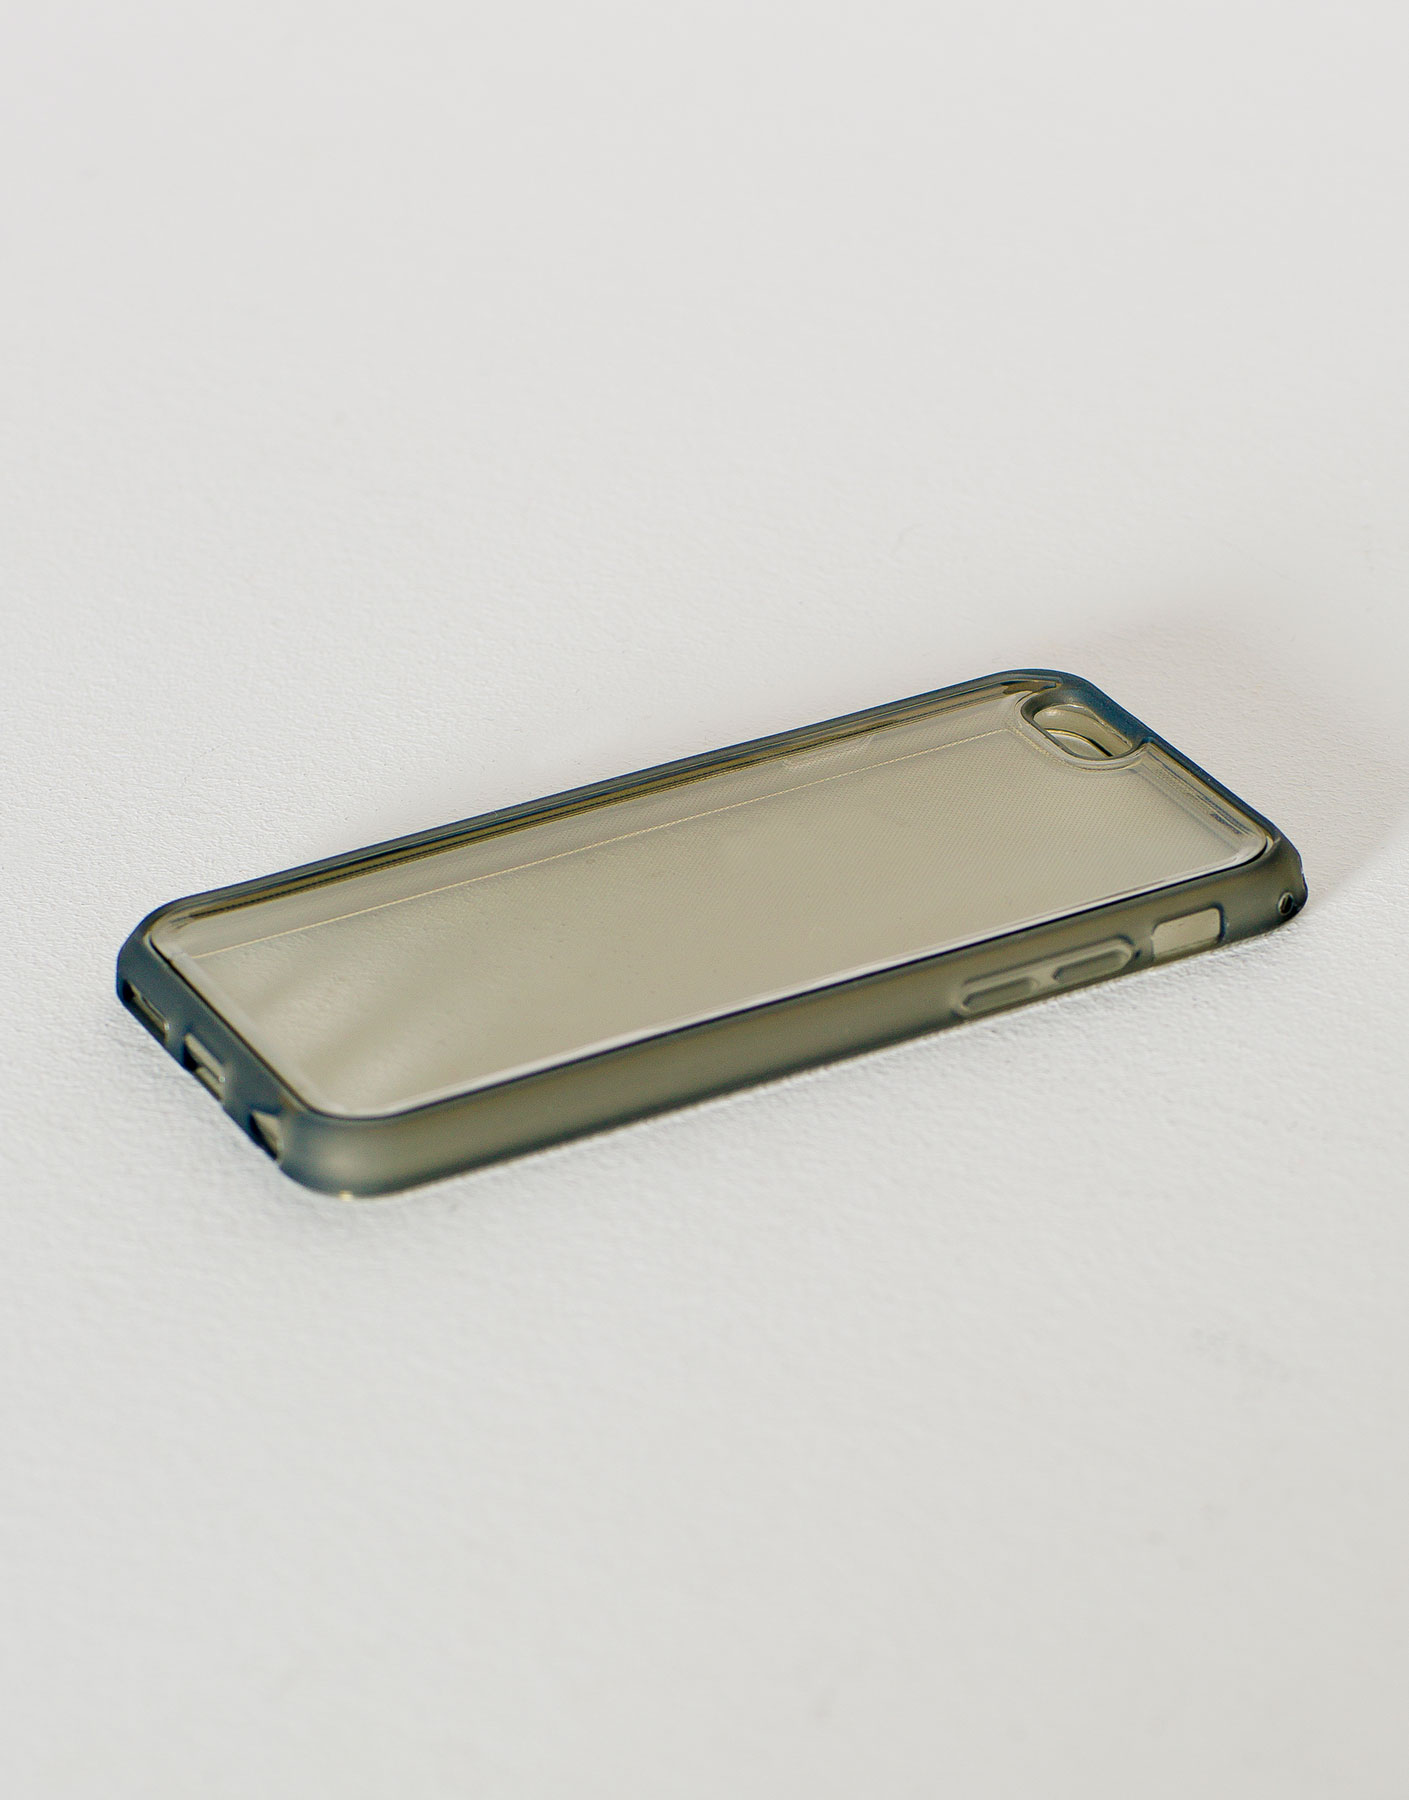 Transparent neon case